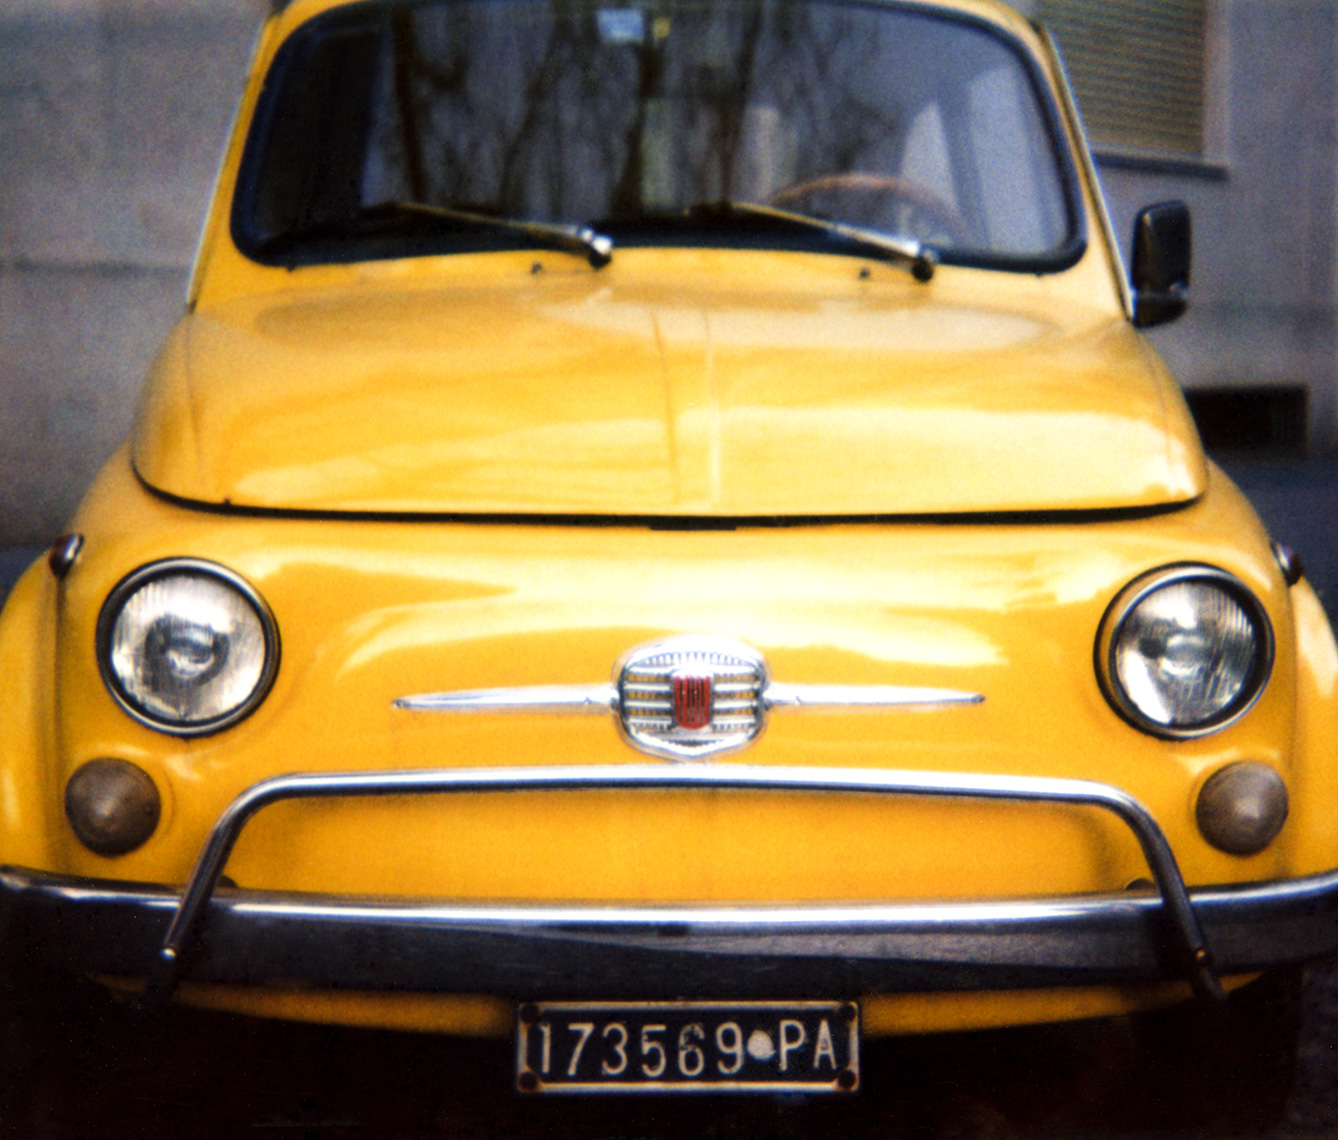 Image of yellow vintage Fiat 500 | Photographers using film